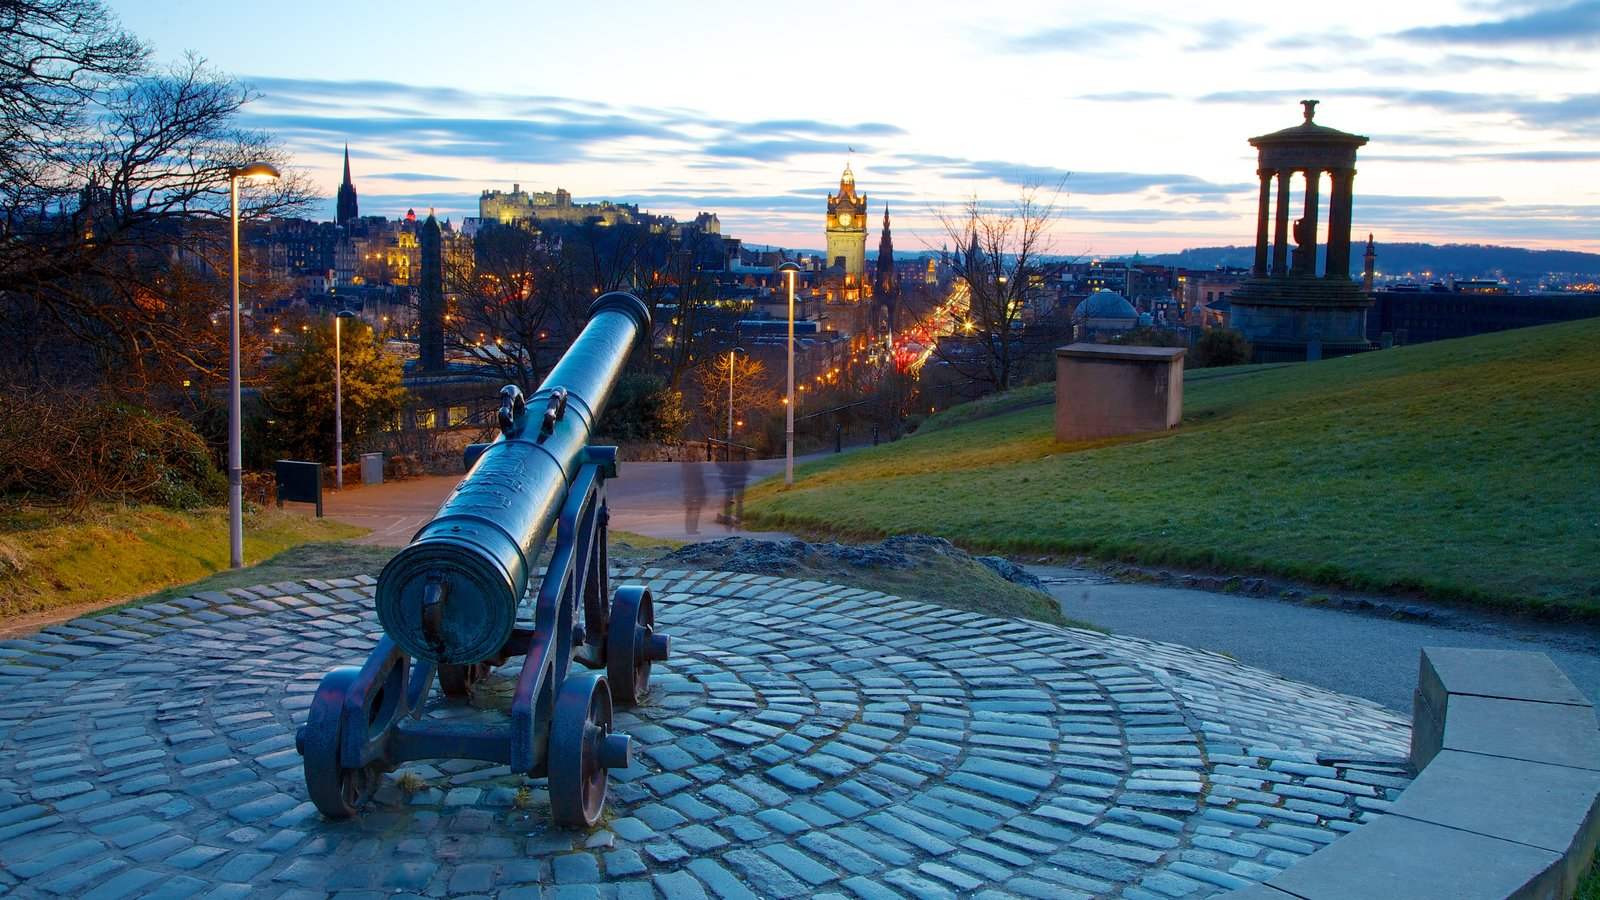 Calton Hill which includes a sunset and military items